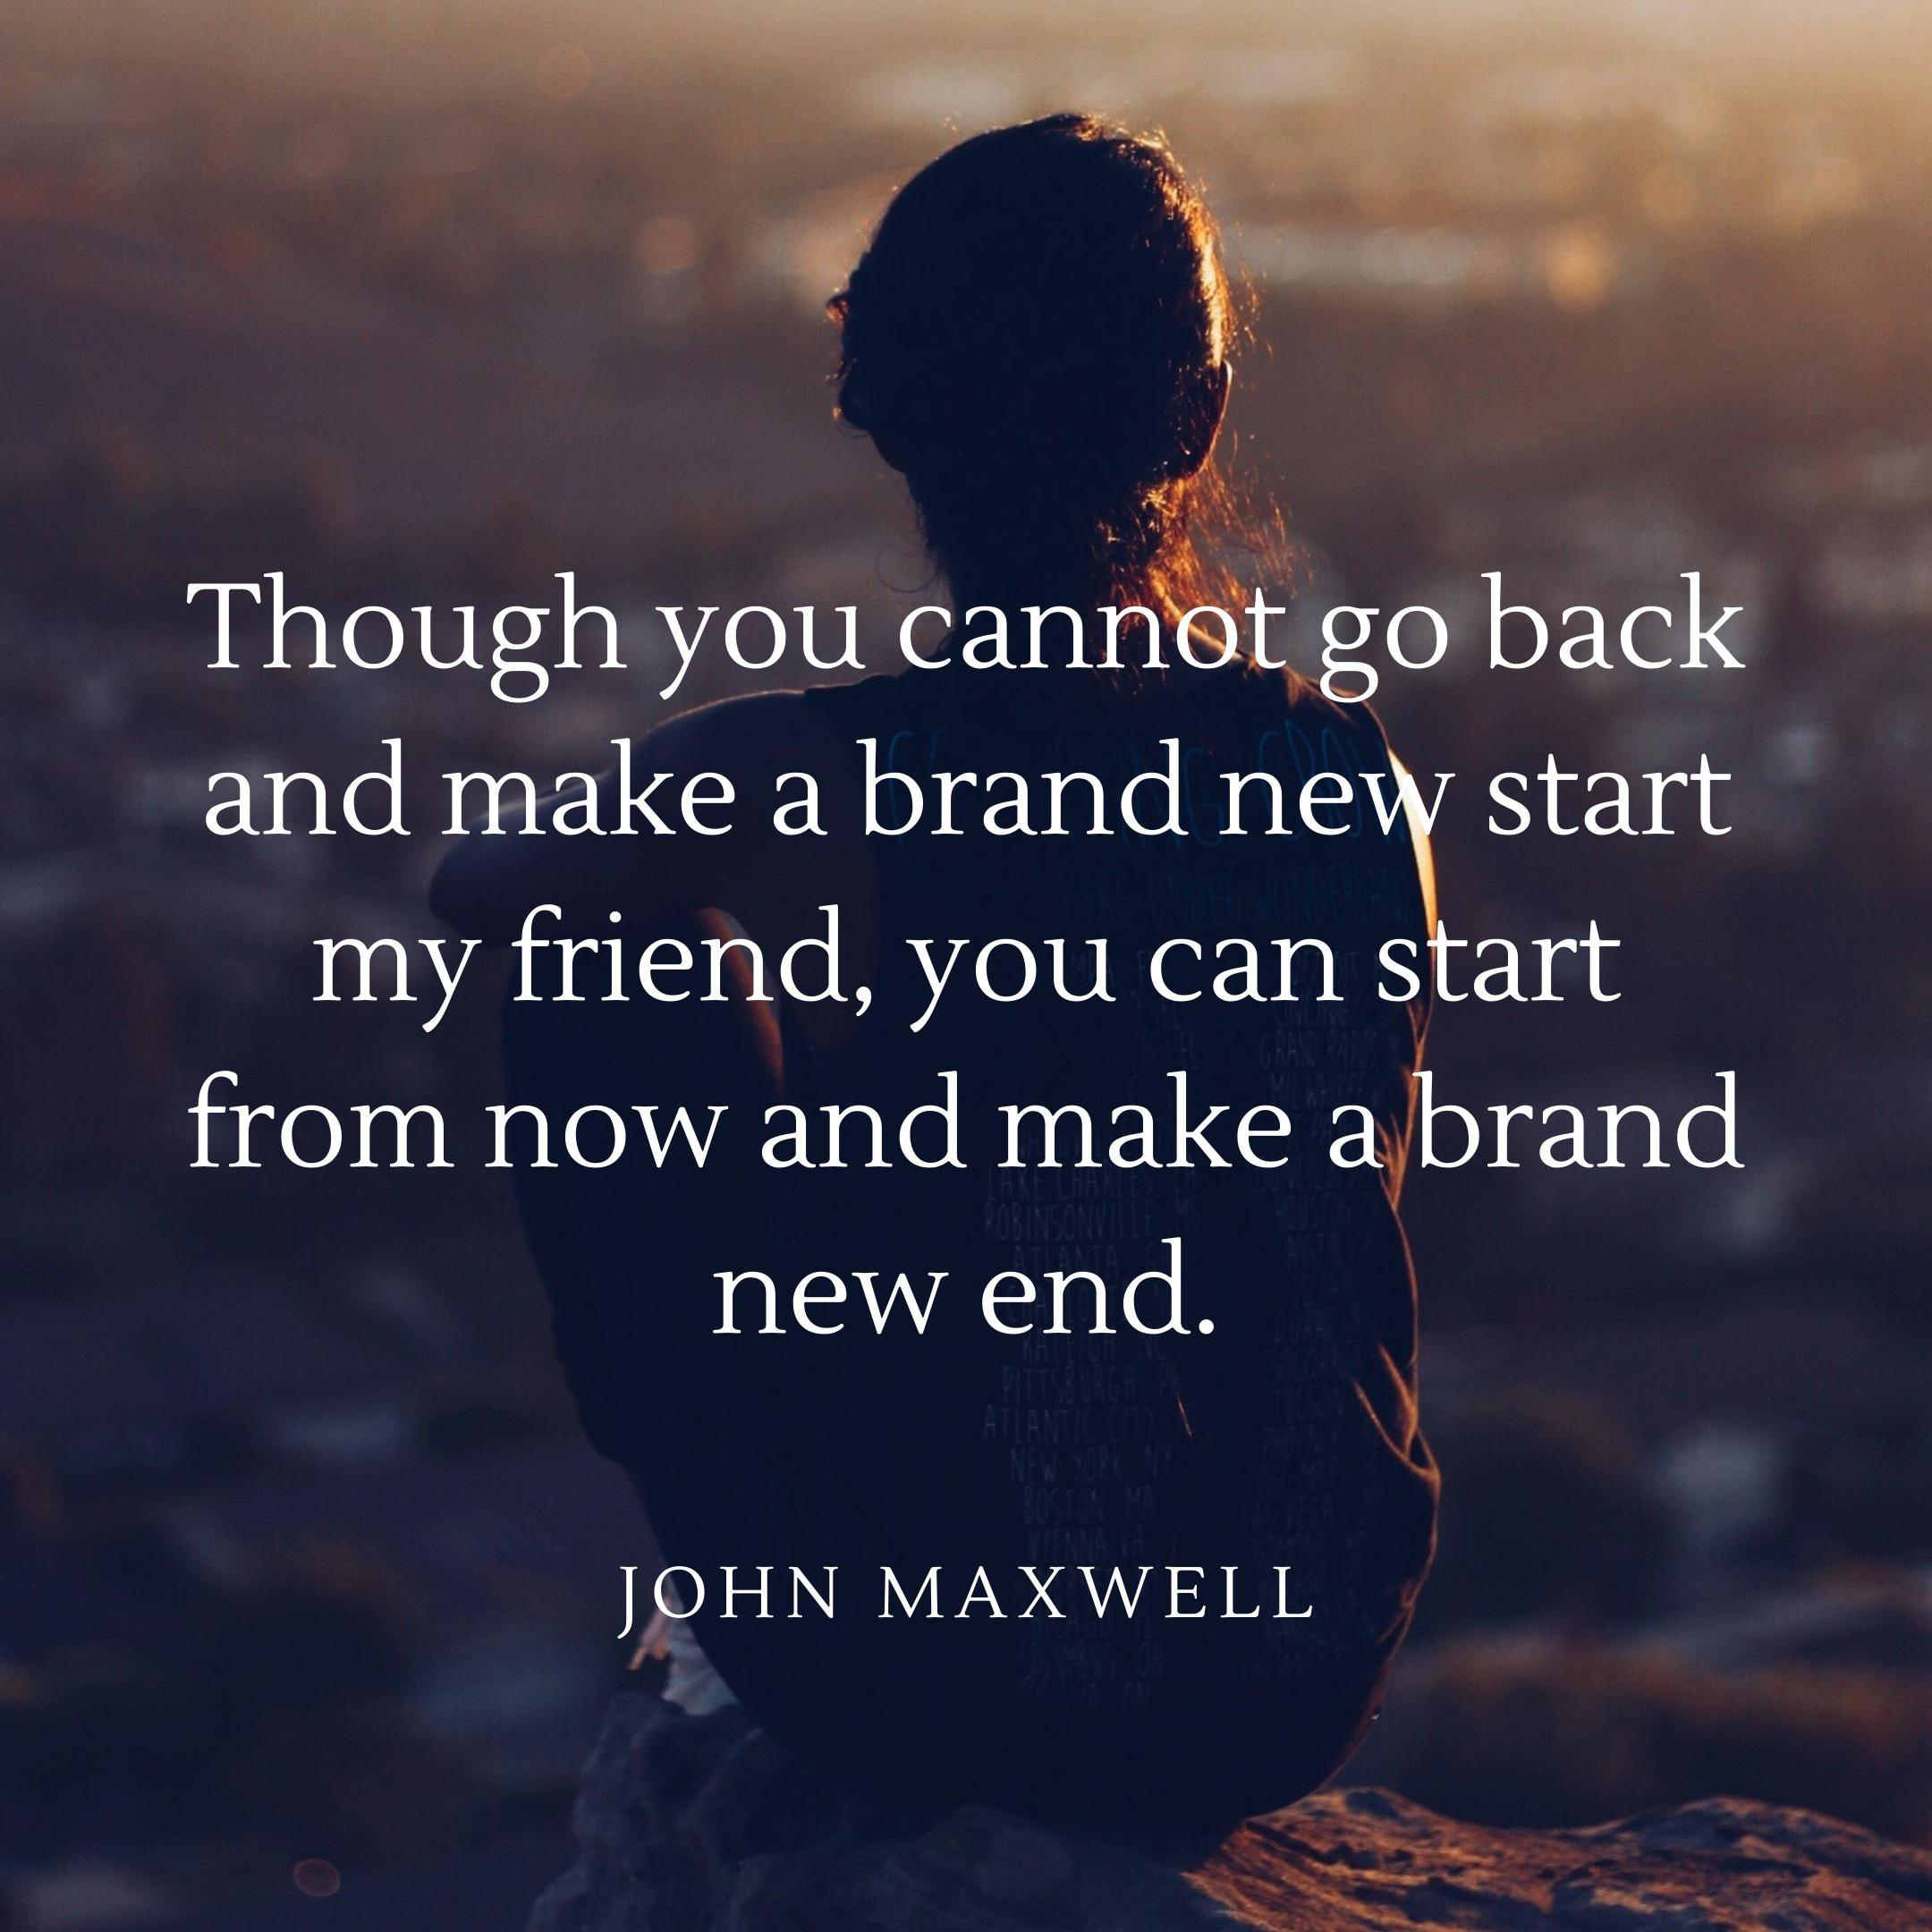 """Though you cannot go back and make a brand new start my friend, you can start from now and make a brand new end."" John Maxwell [800 x 800]"